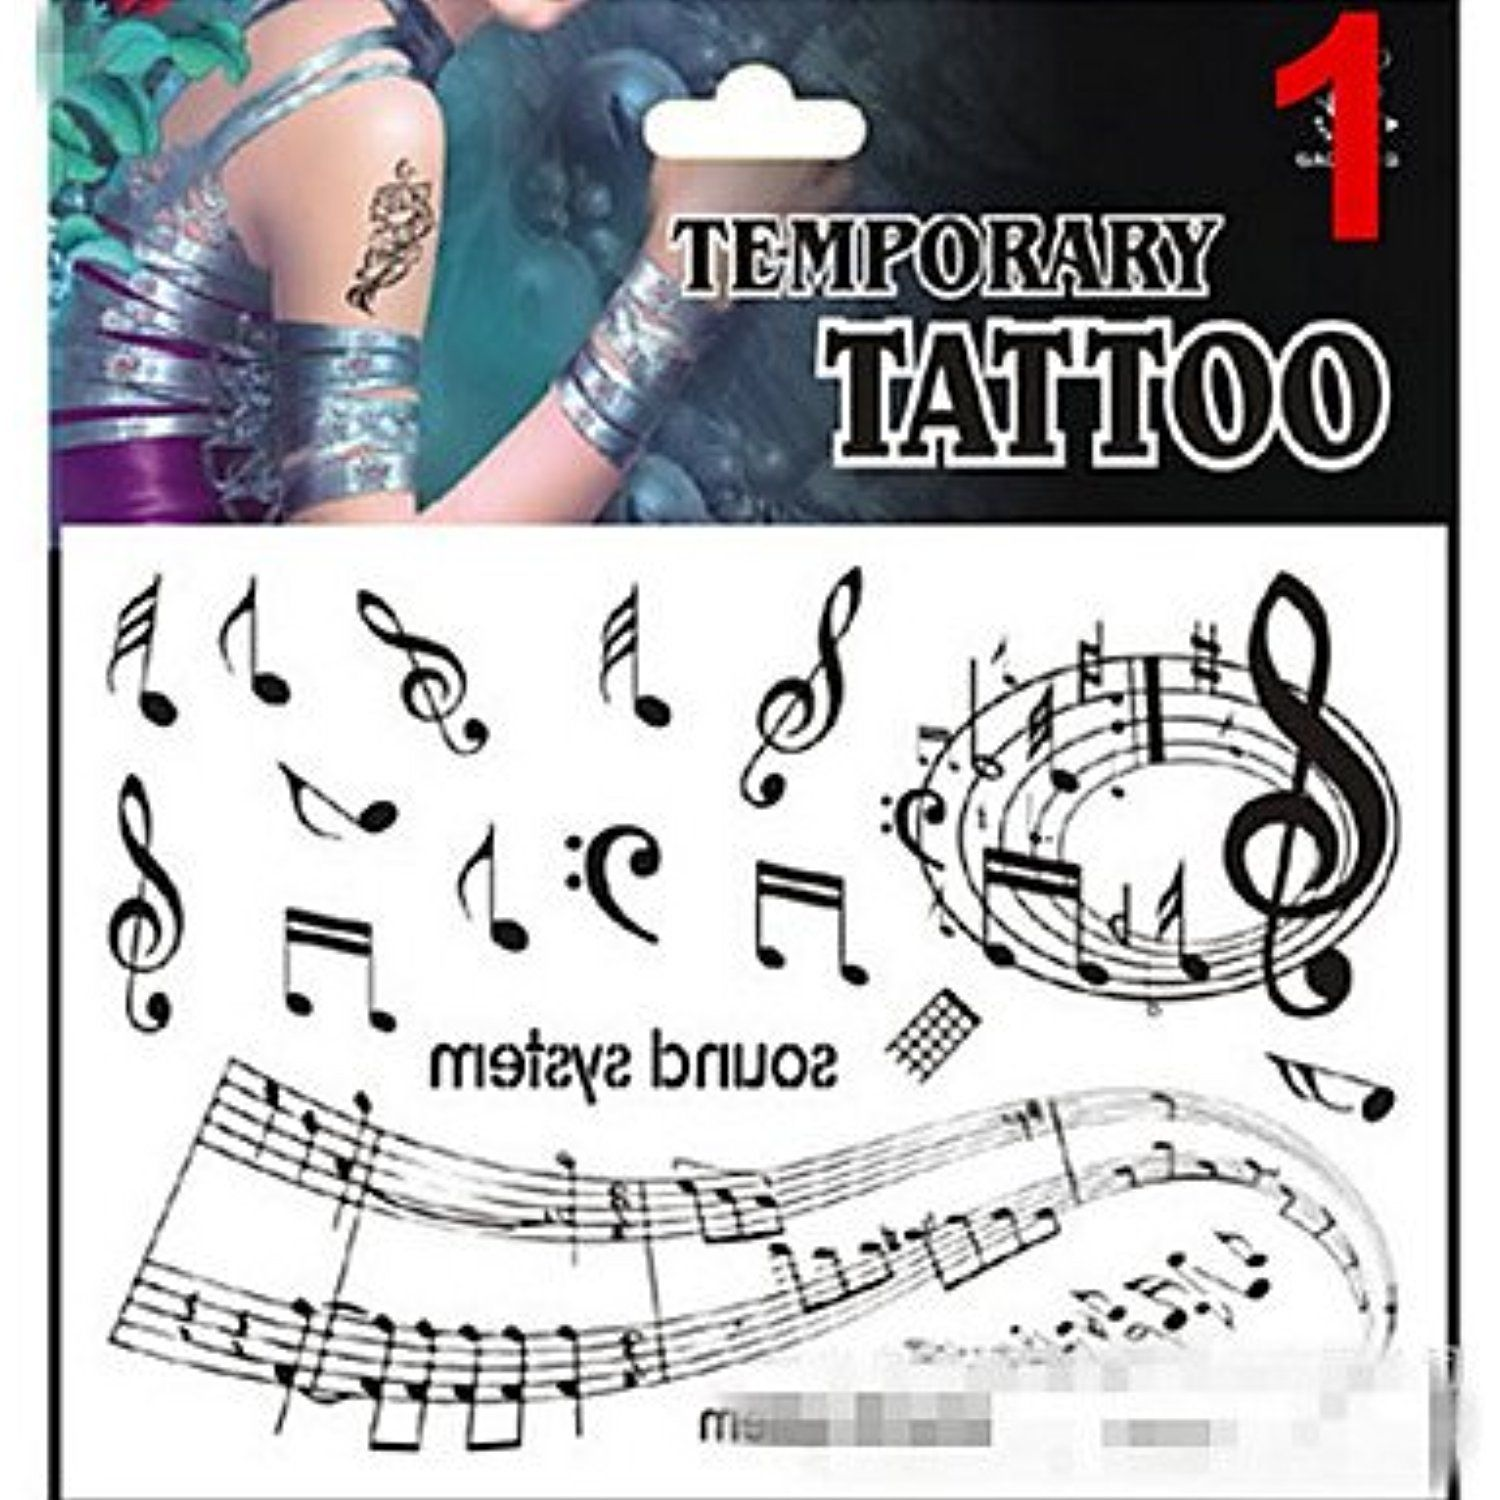 Lower back tattoo ideas for men tattoo stickers others non toxic pattern glitter lower back